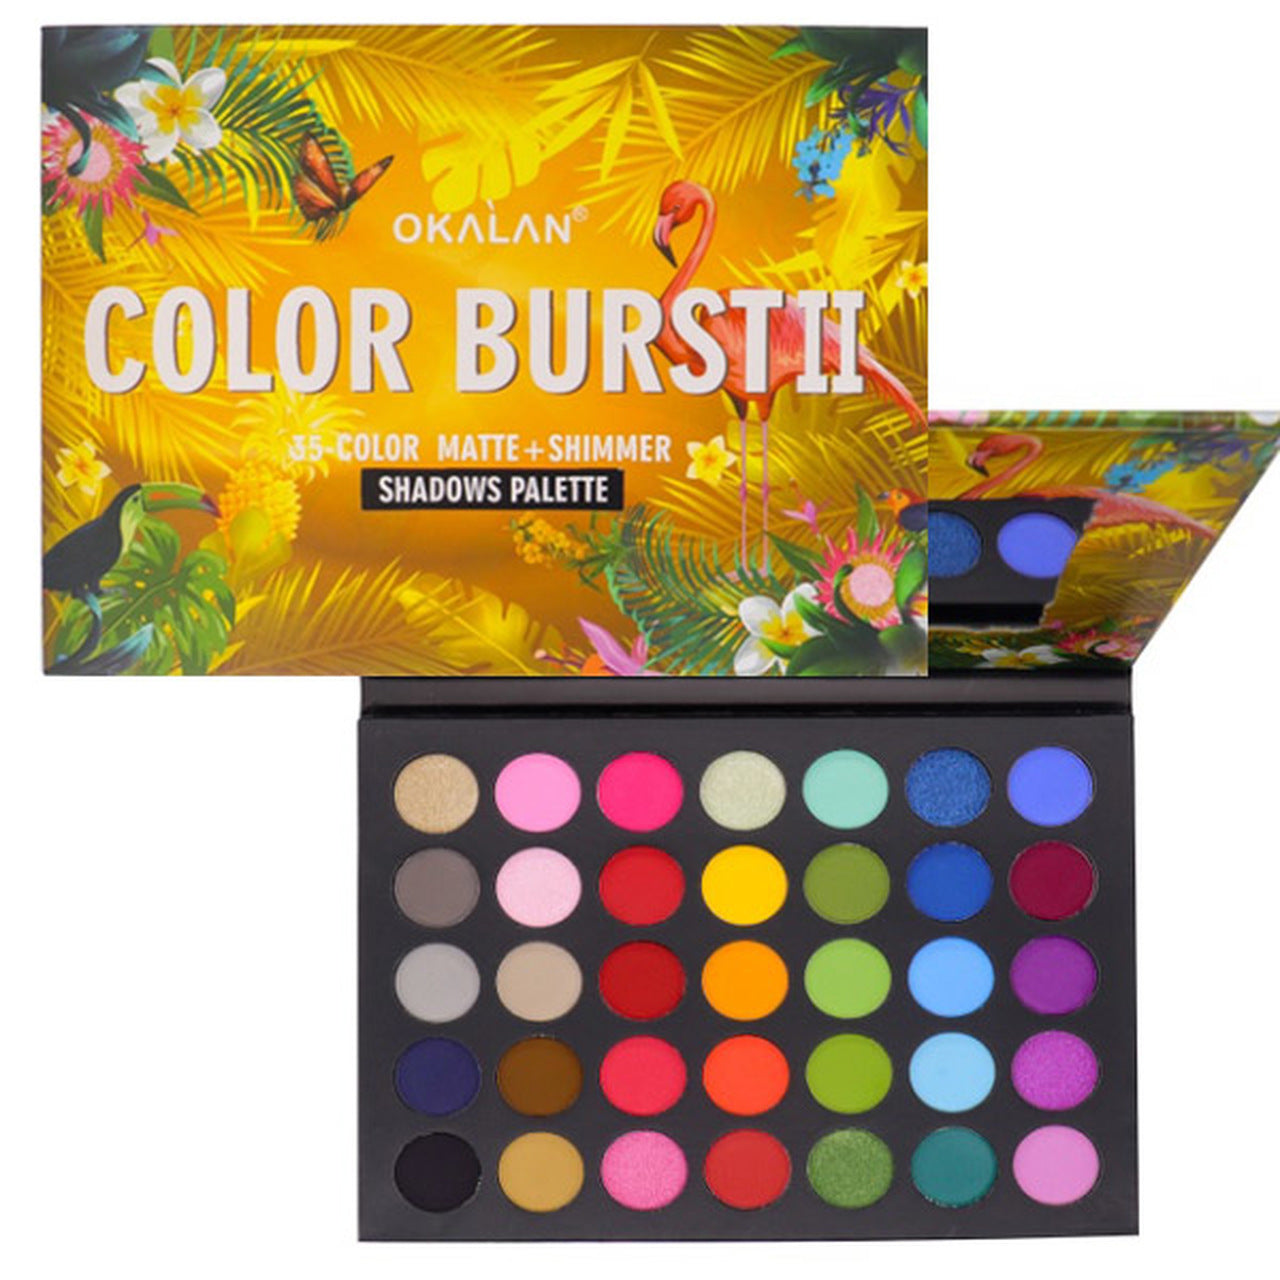 OKL-E095 : Color Burst II-35 Matte+Shimmer Shadows Palette 6 PC